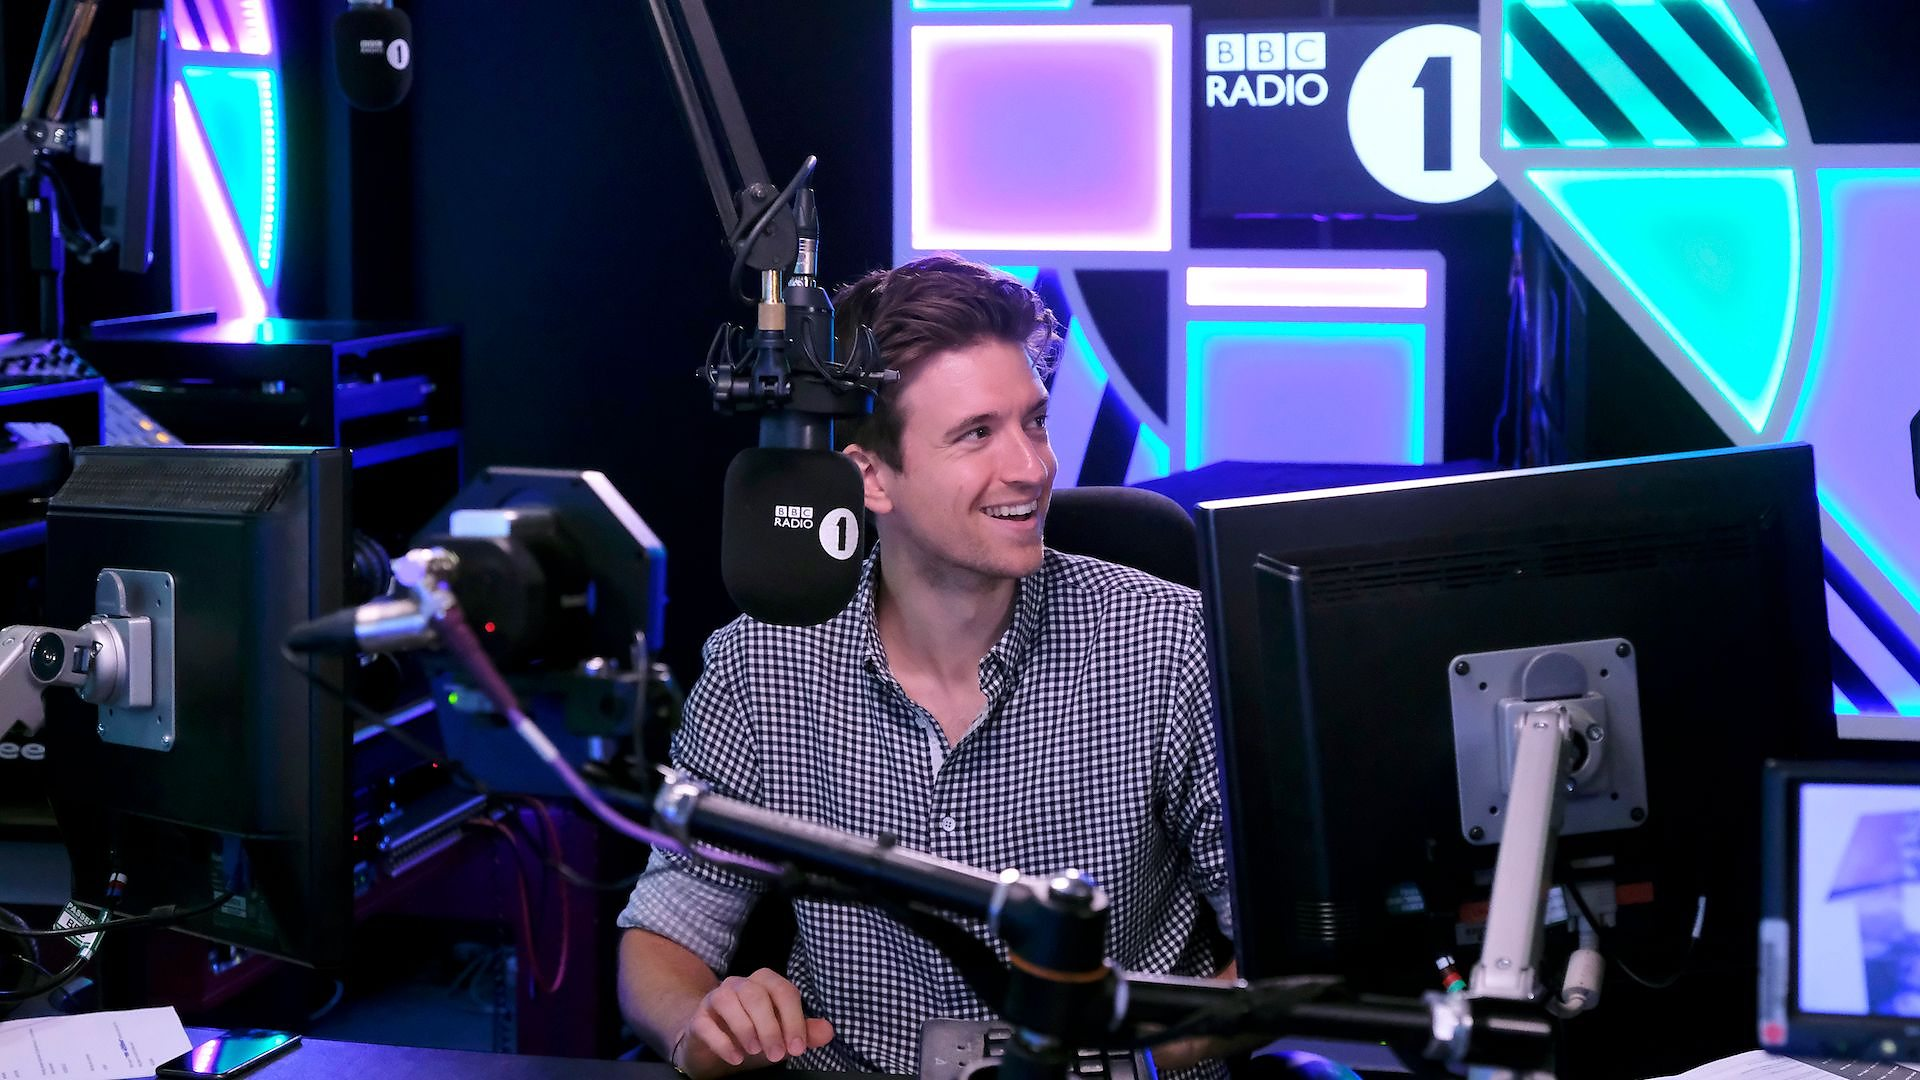 BBC Radio 1 - Radio 1 Breakfast with Greg James - The most fun ...